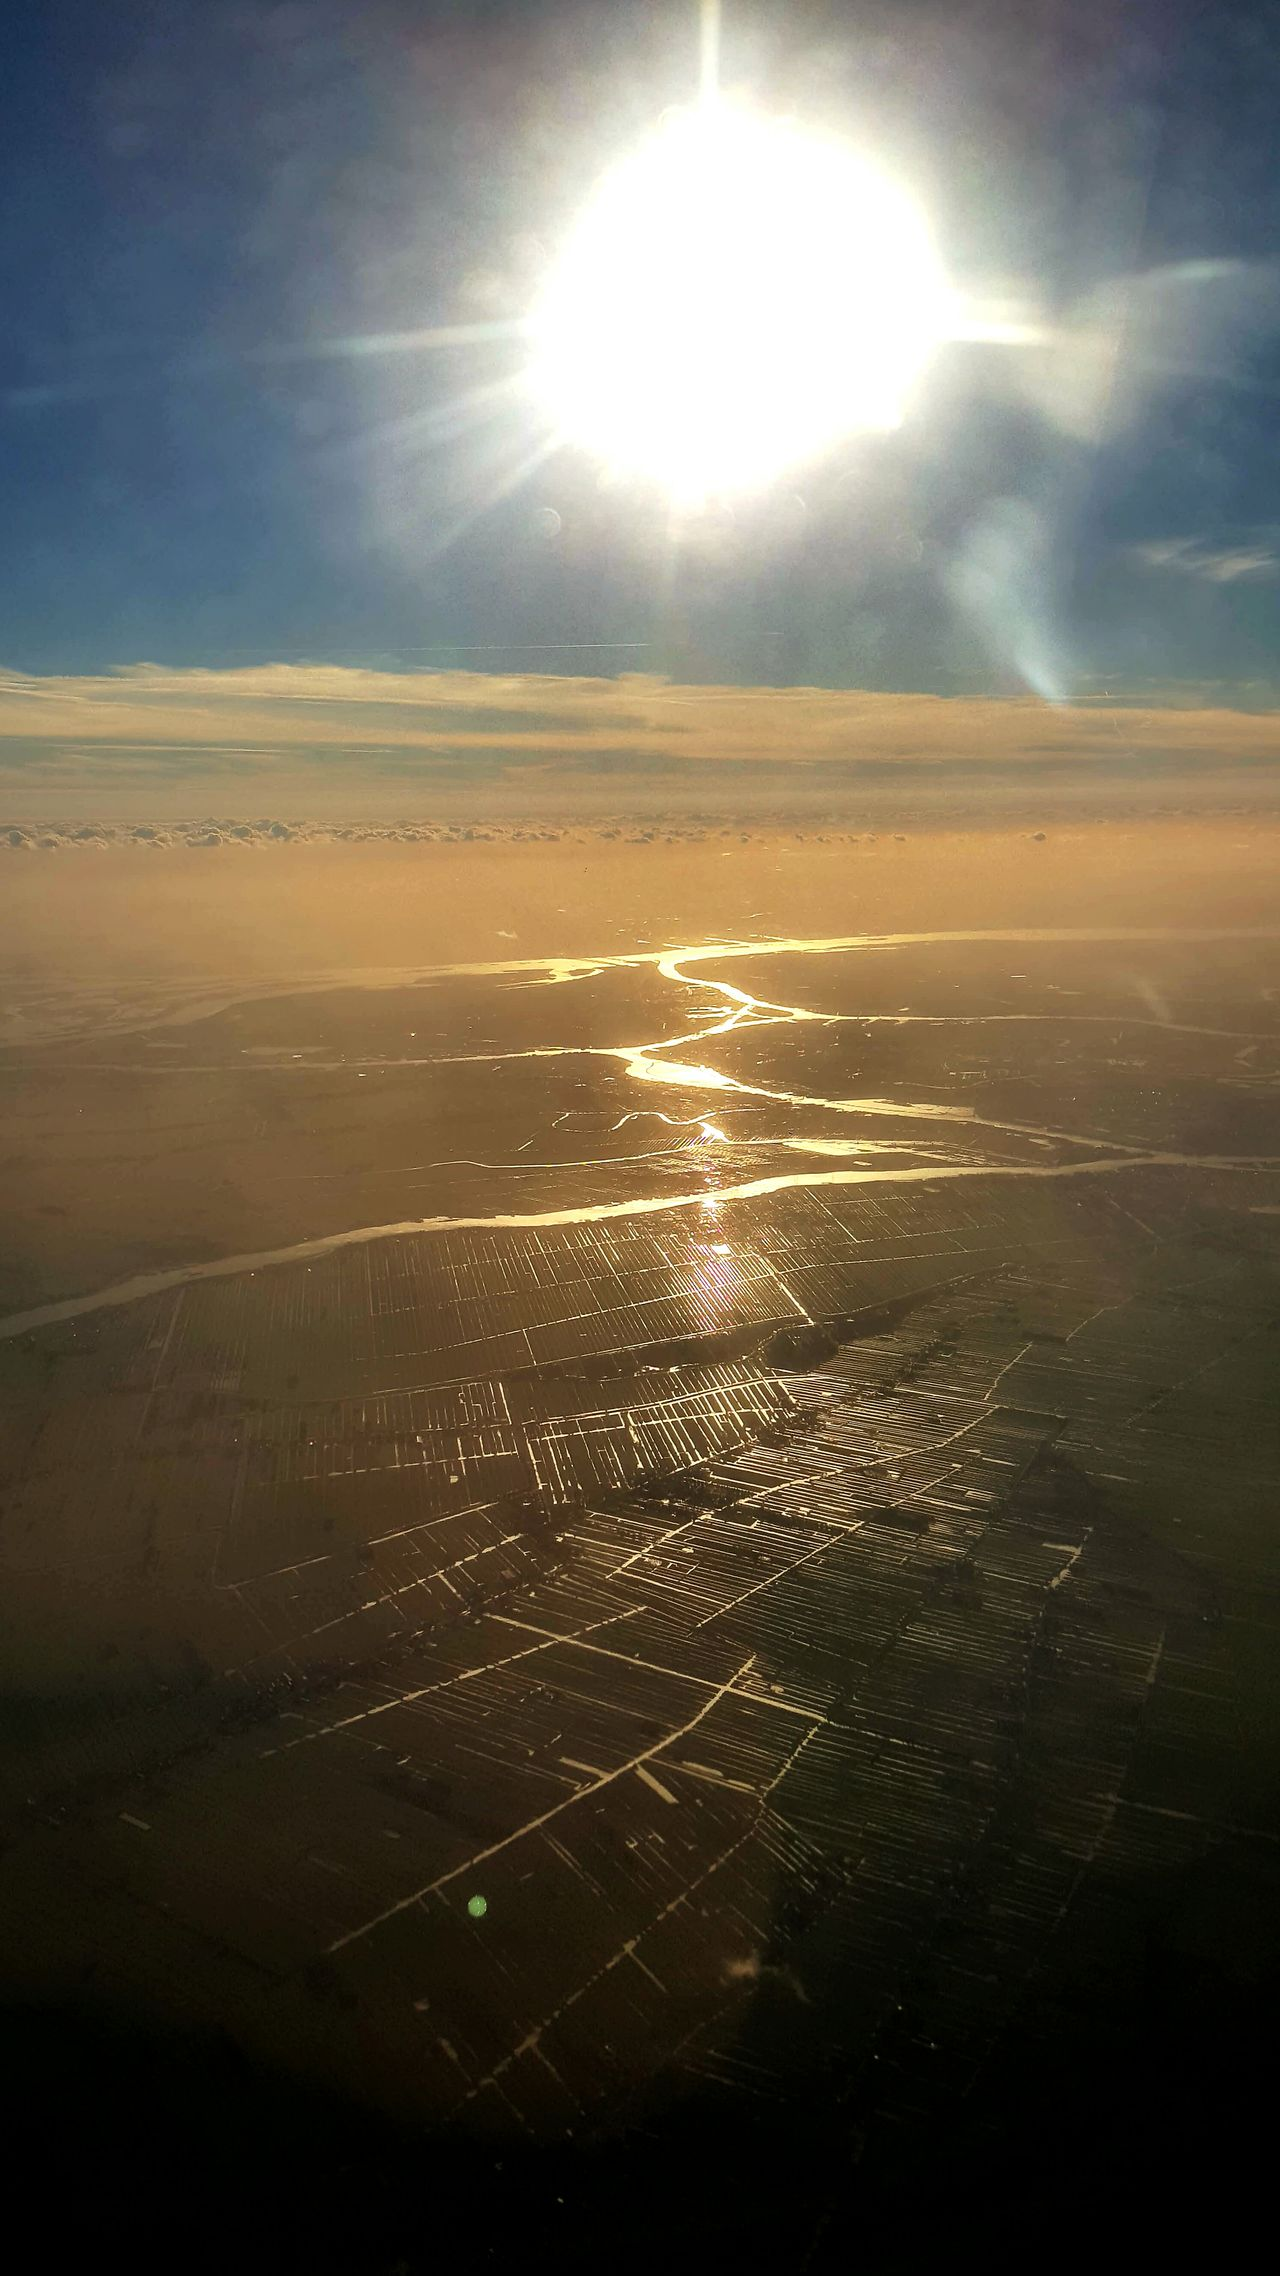 Beauty In Nature Sunlight Sun Scenics Dutch Agriculture Dutch Landscapes Dutch Countyside Dutch Landscape Landscape Beautiful View From The Window... Flying High Taking Pictures Photography Amazing View Travel Photography Traveling Mode Of Transport Commercial Airplane Sunbeam Sky Flying Sunlight Looking Through Window Travel